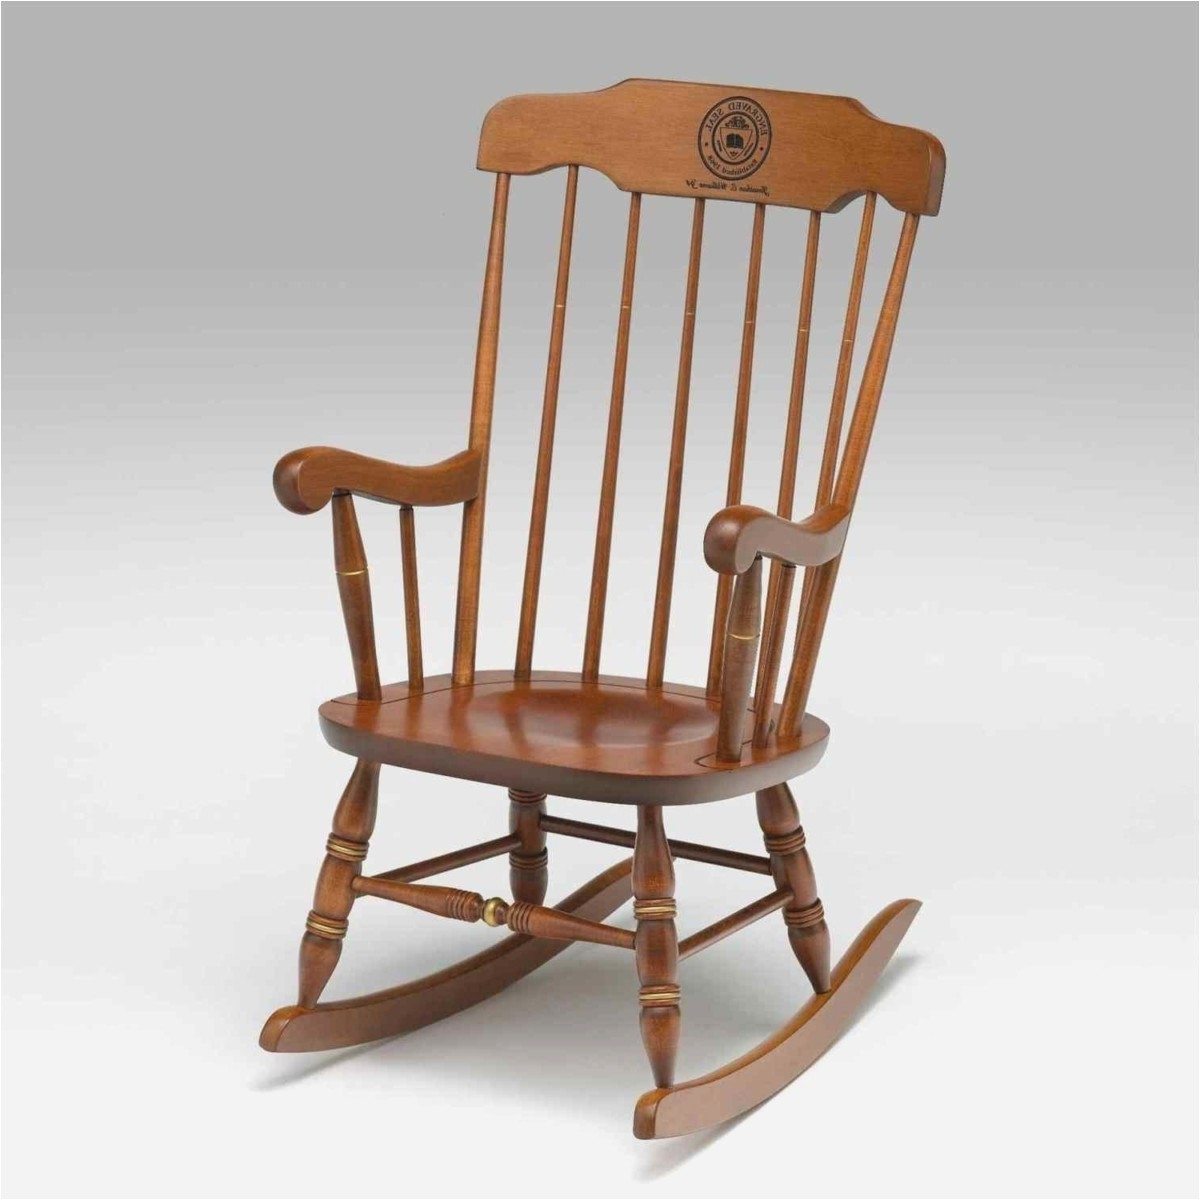 Rocking Chairs For Adults Regarding Well Liked Wooden Rocking Chair Johannesburg Archives – Chair Furniture (View 13 of 20)